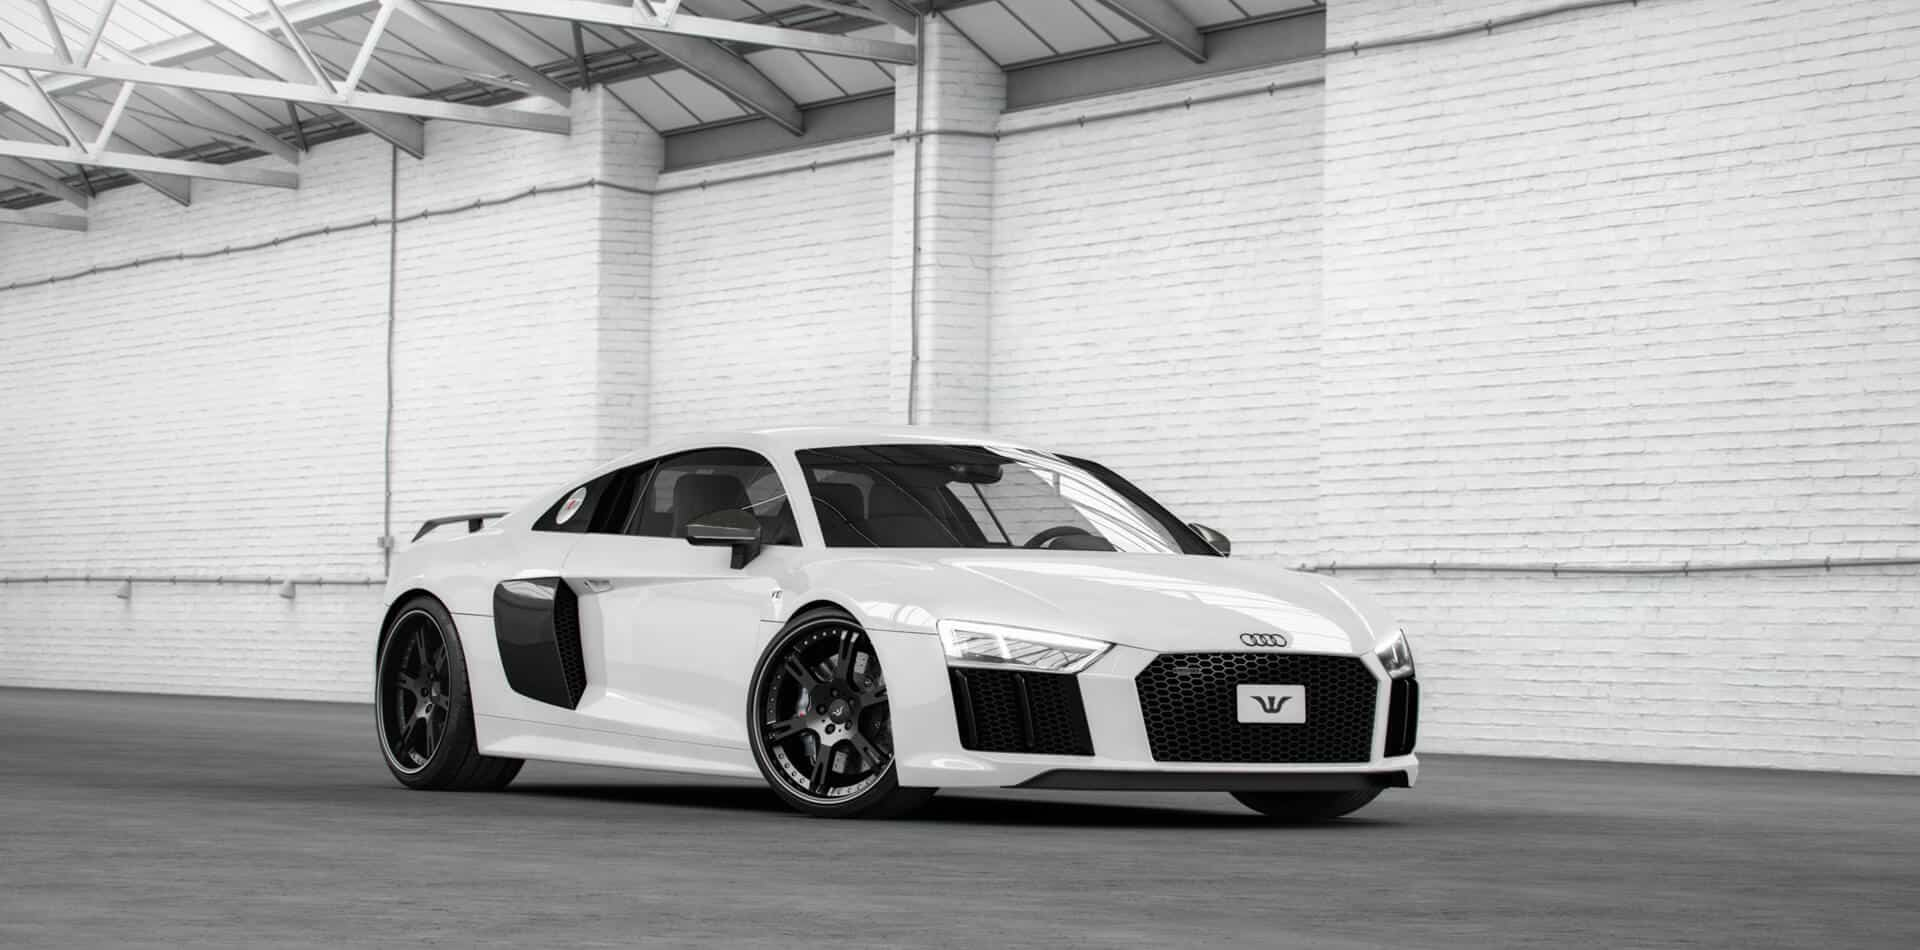 Audi R8 4s Tuning Wheels Exhaust And Power Upgrades Wheelsandmore Wheelsandmore Tuning